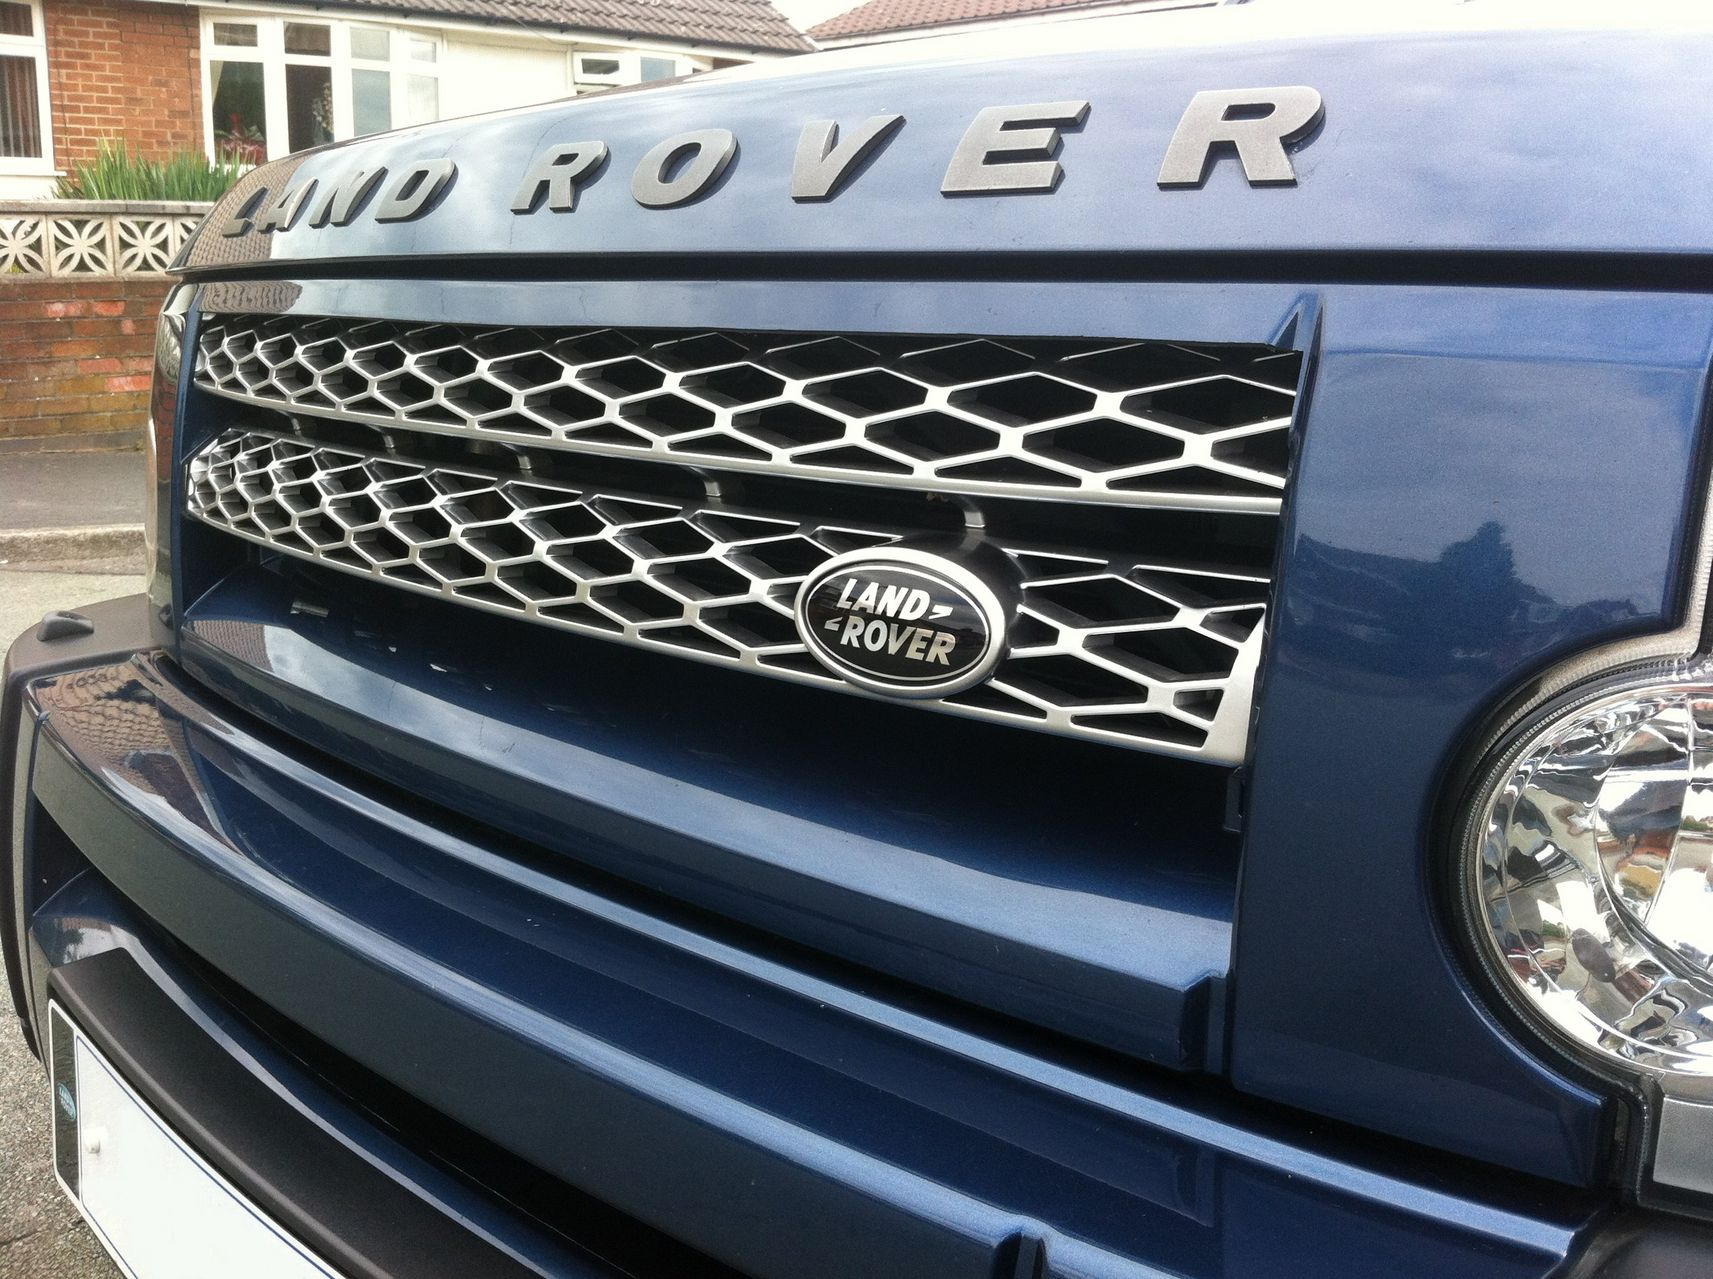 Disco3 Co Uk View Topic Rrs Modded Grill In Cairns Blue